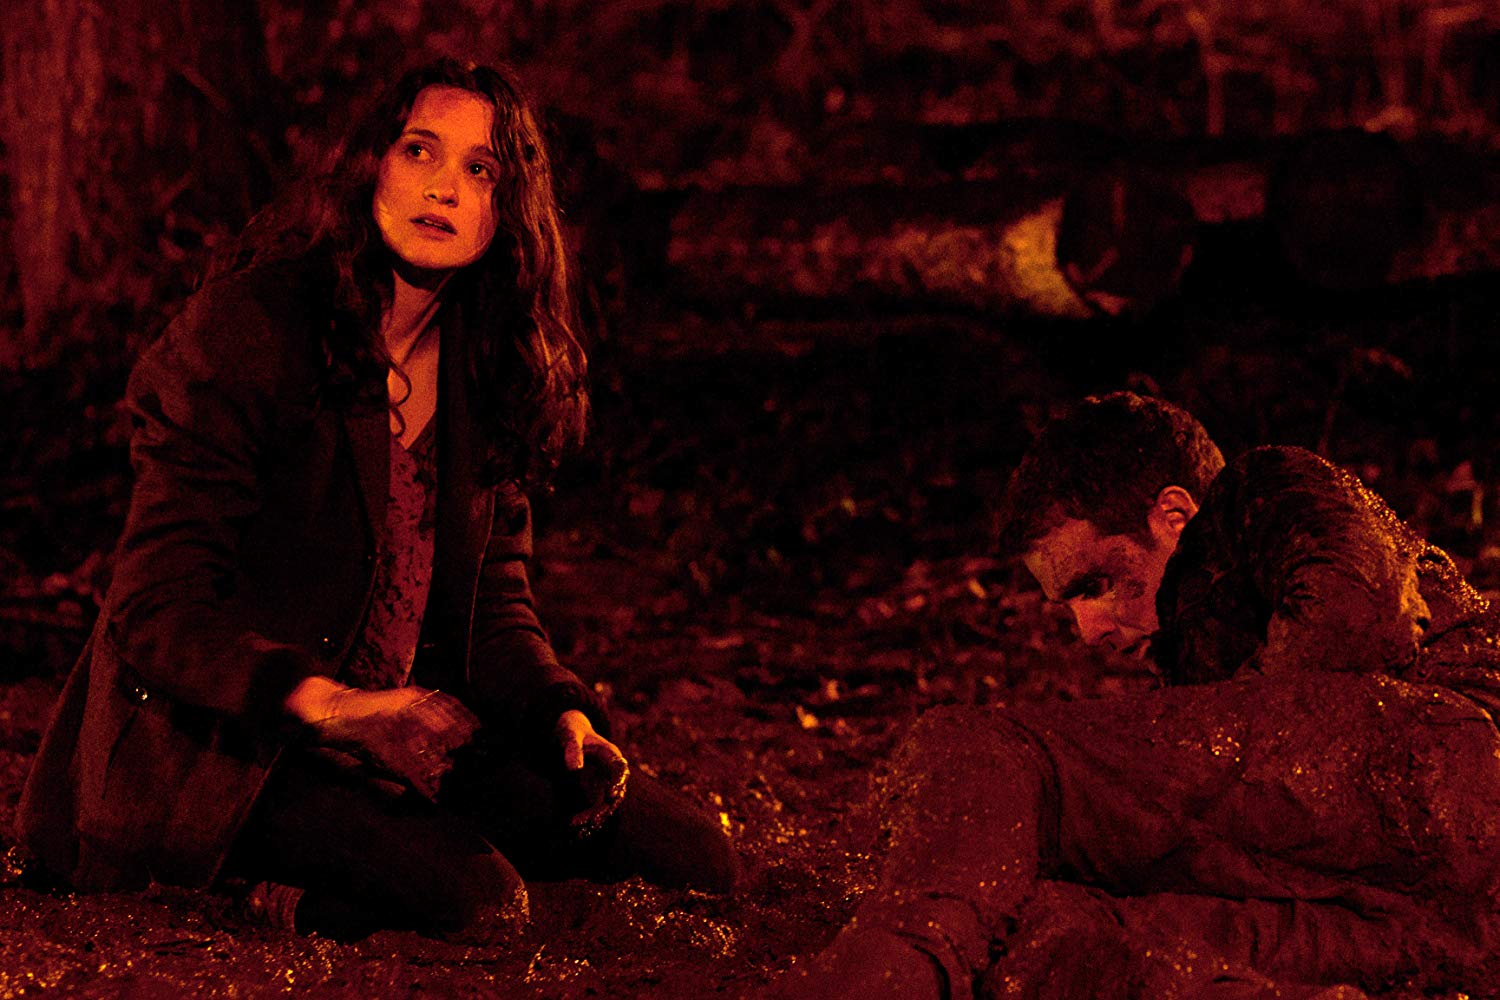 Alice Englert and Iain De Caestecker attacked by mysterious figures in In Fear (2013)